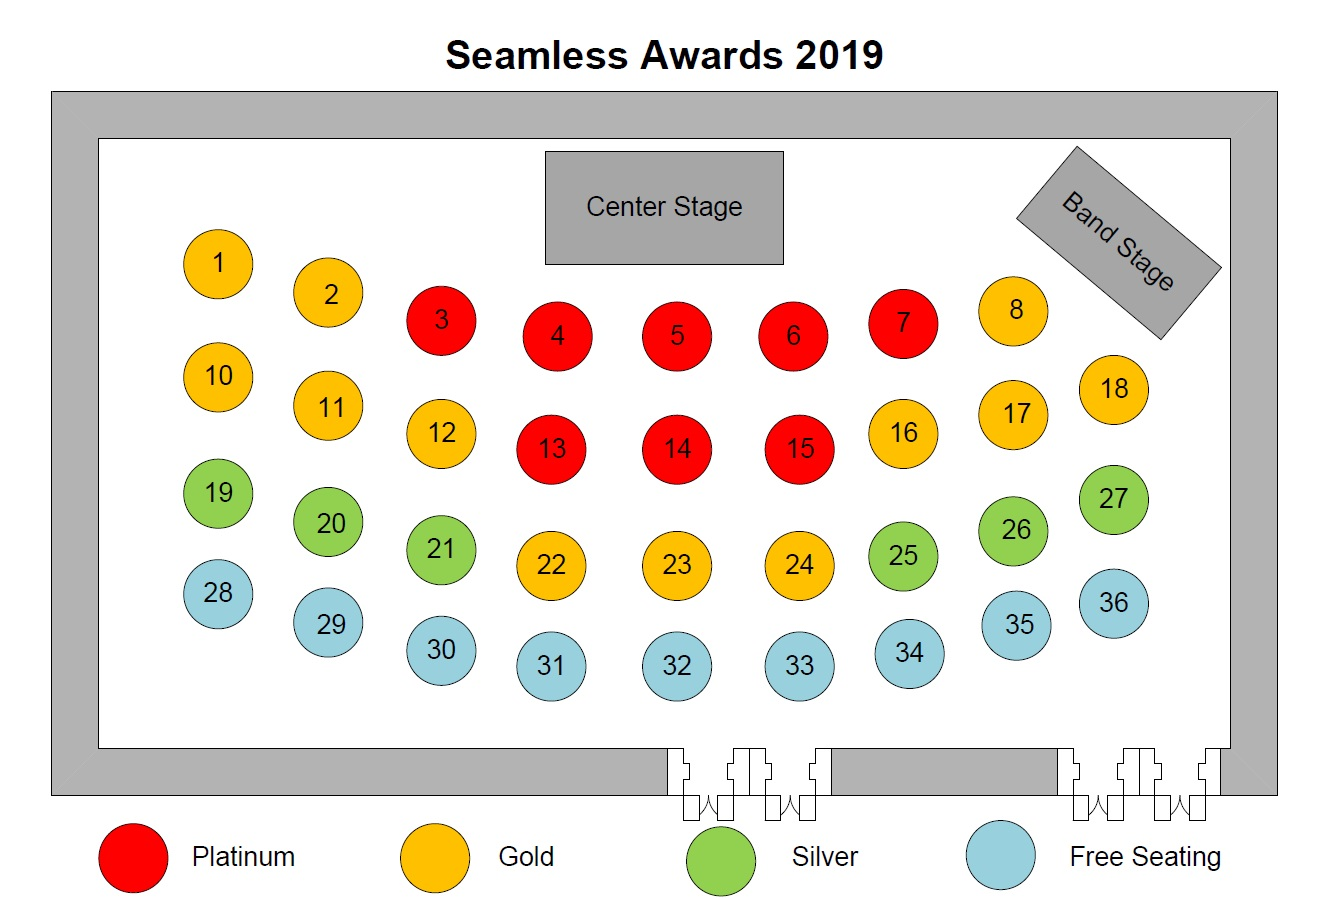 Seamless Awards Floorplan